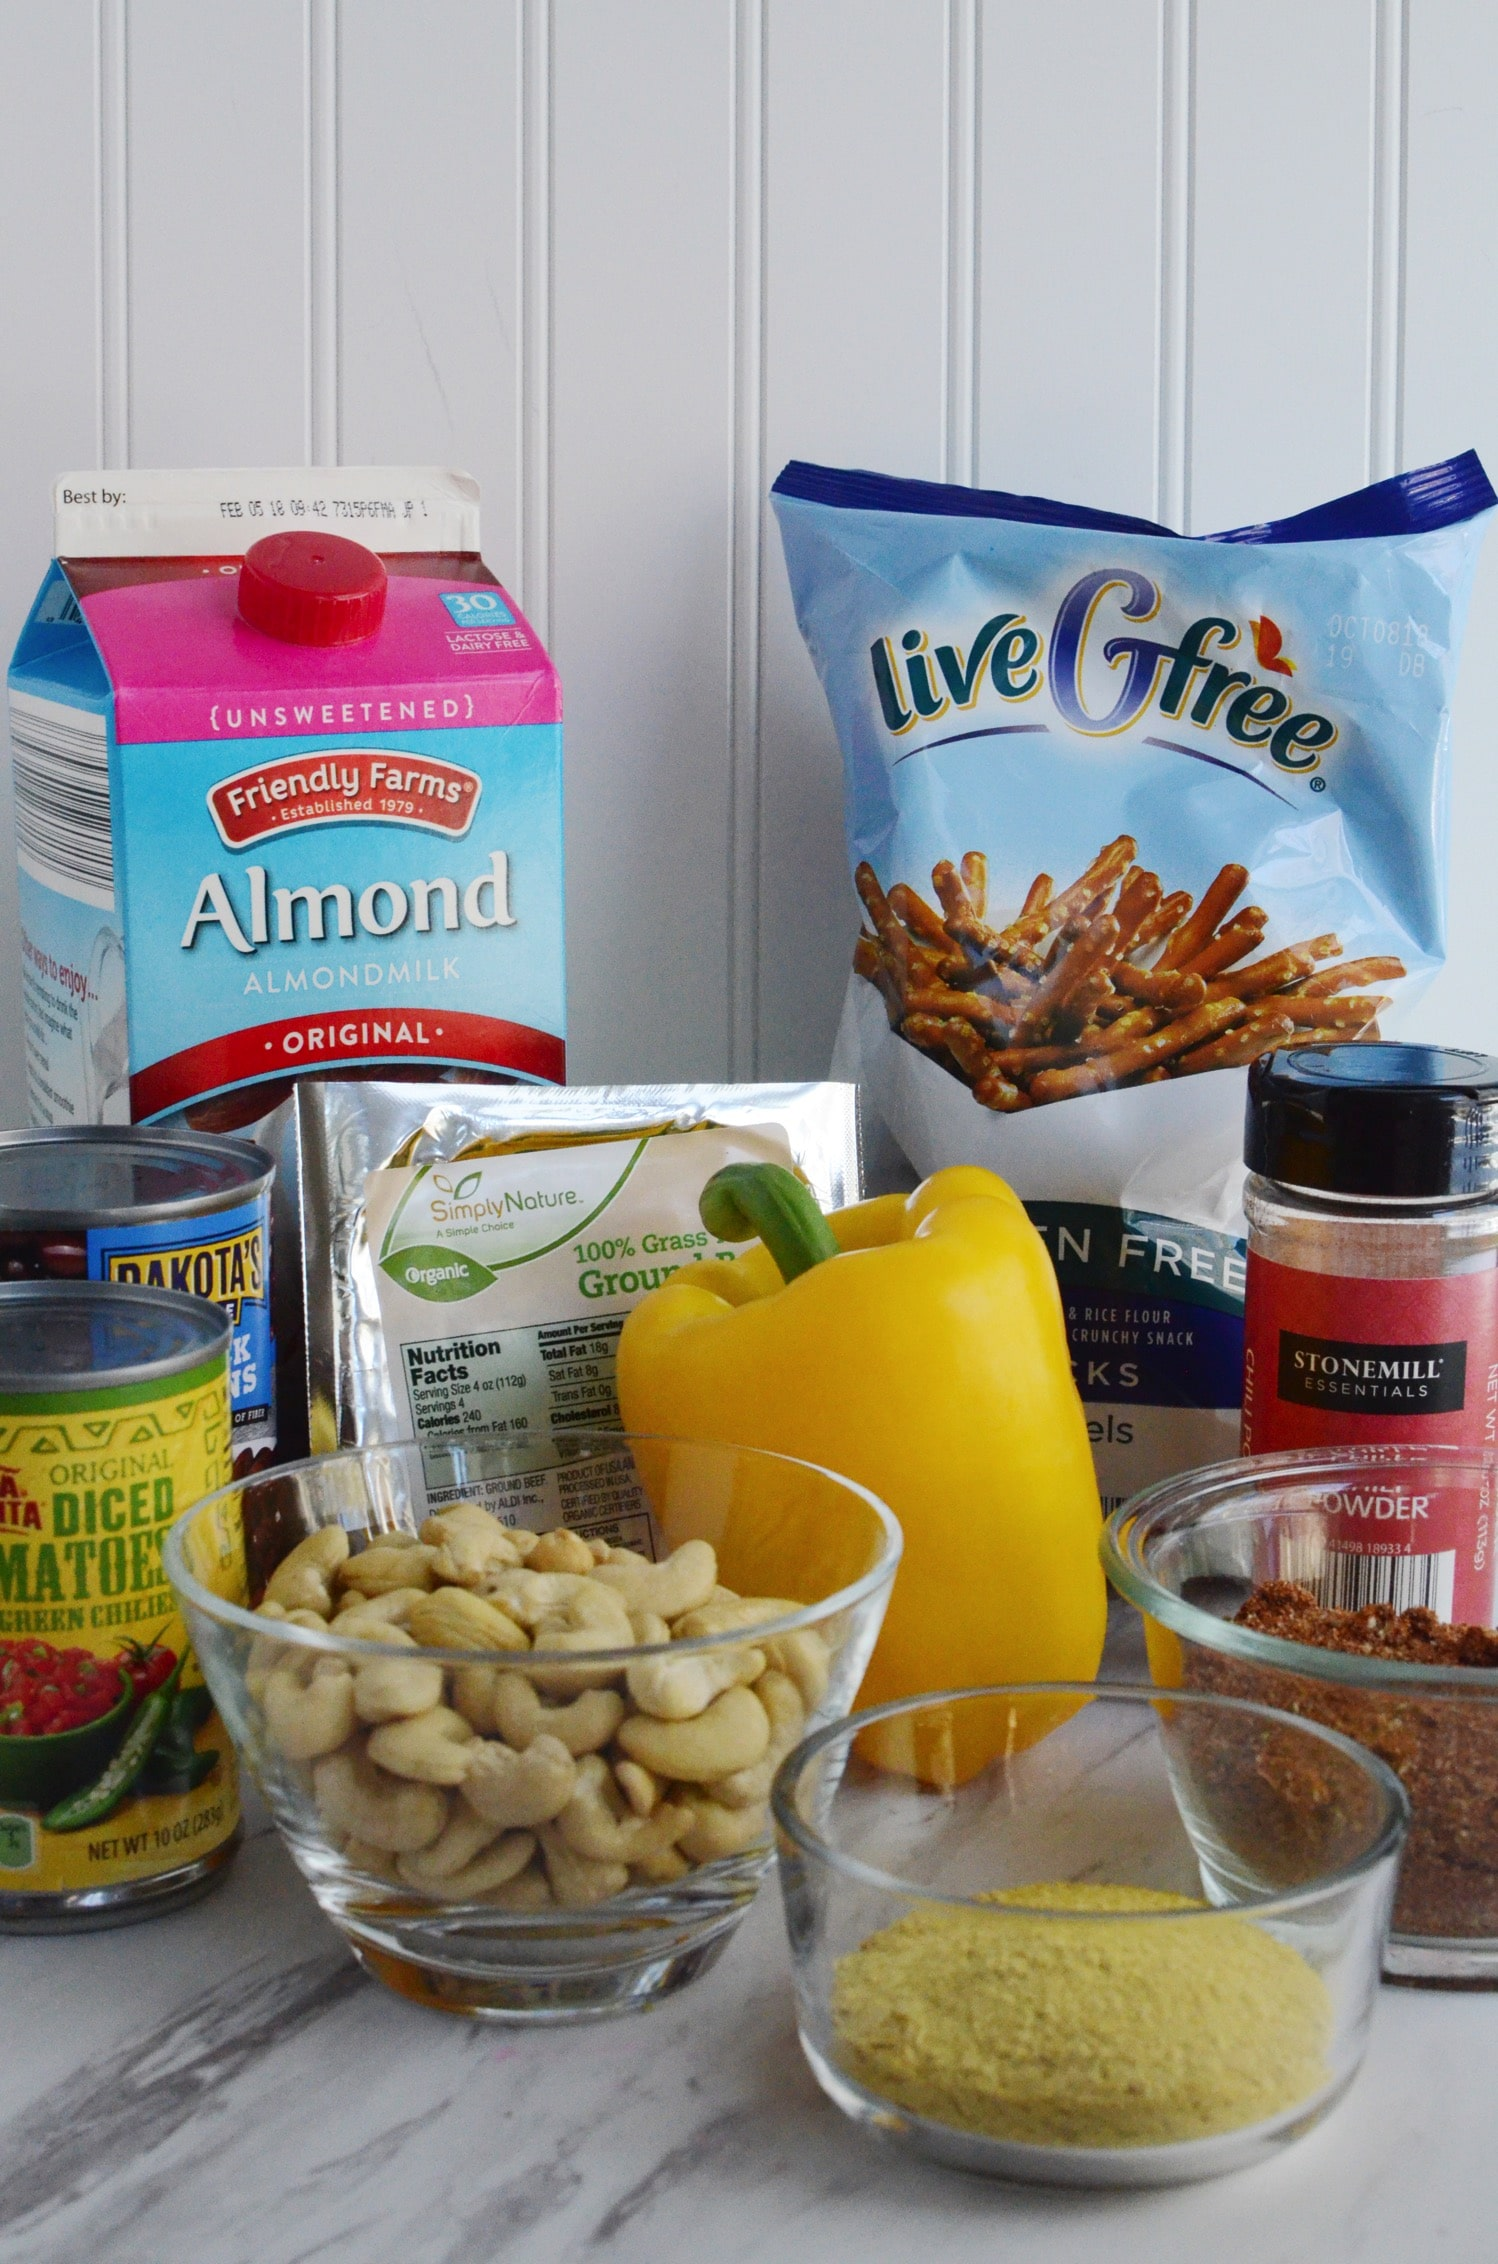 Dairy free chili cheese dip ingredients